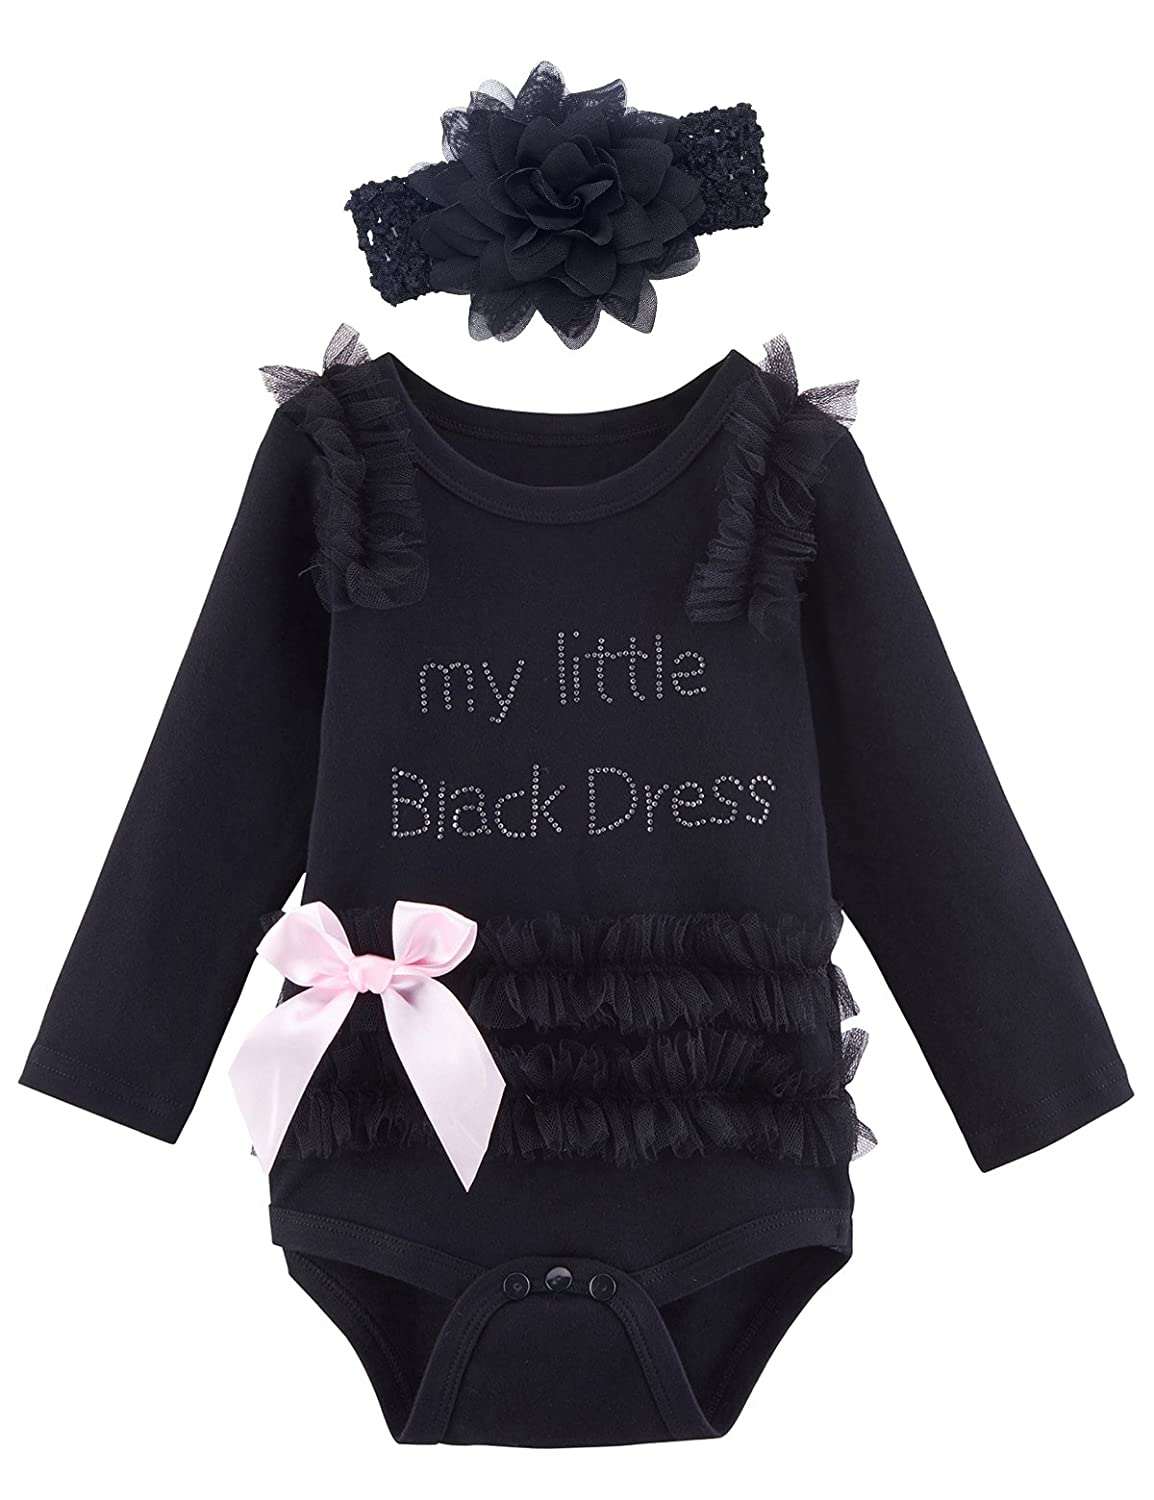 480abe6e96b4 Amazon.com: Mombebe Baby Girls' My Little Black Dress Bodysuit with  Headband (6-12 Months, Black): Clothing